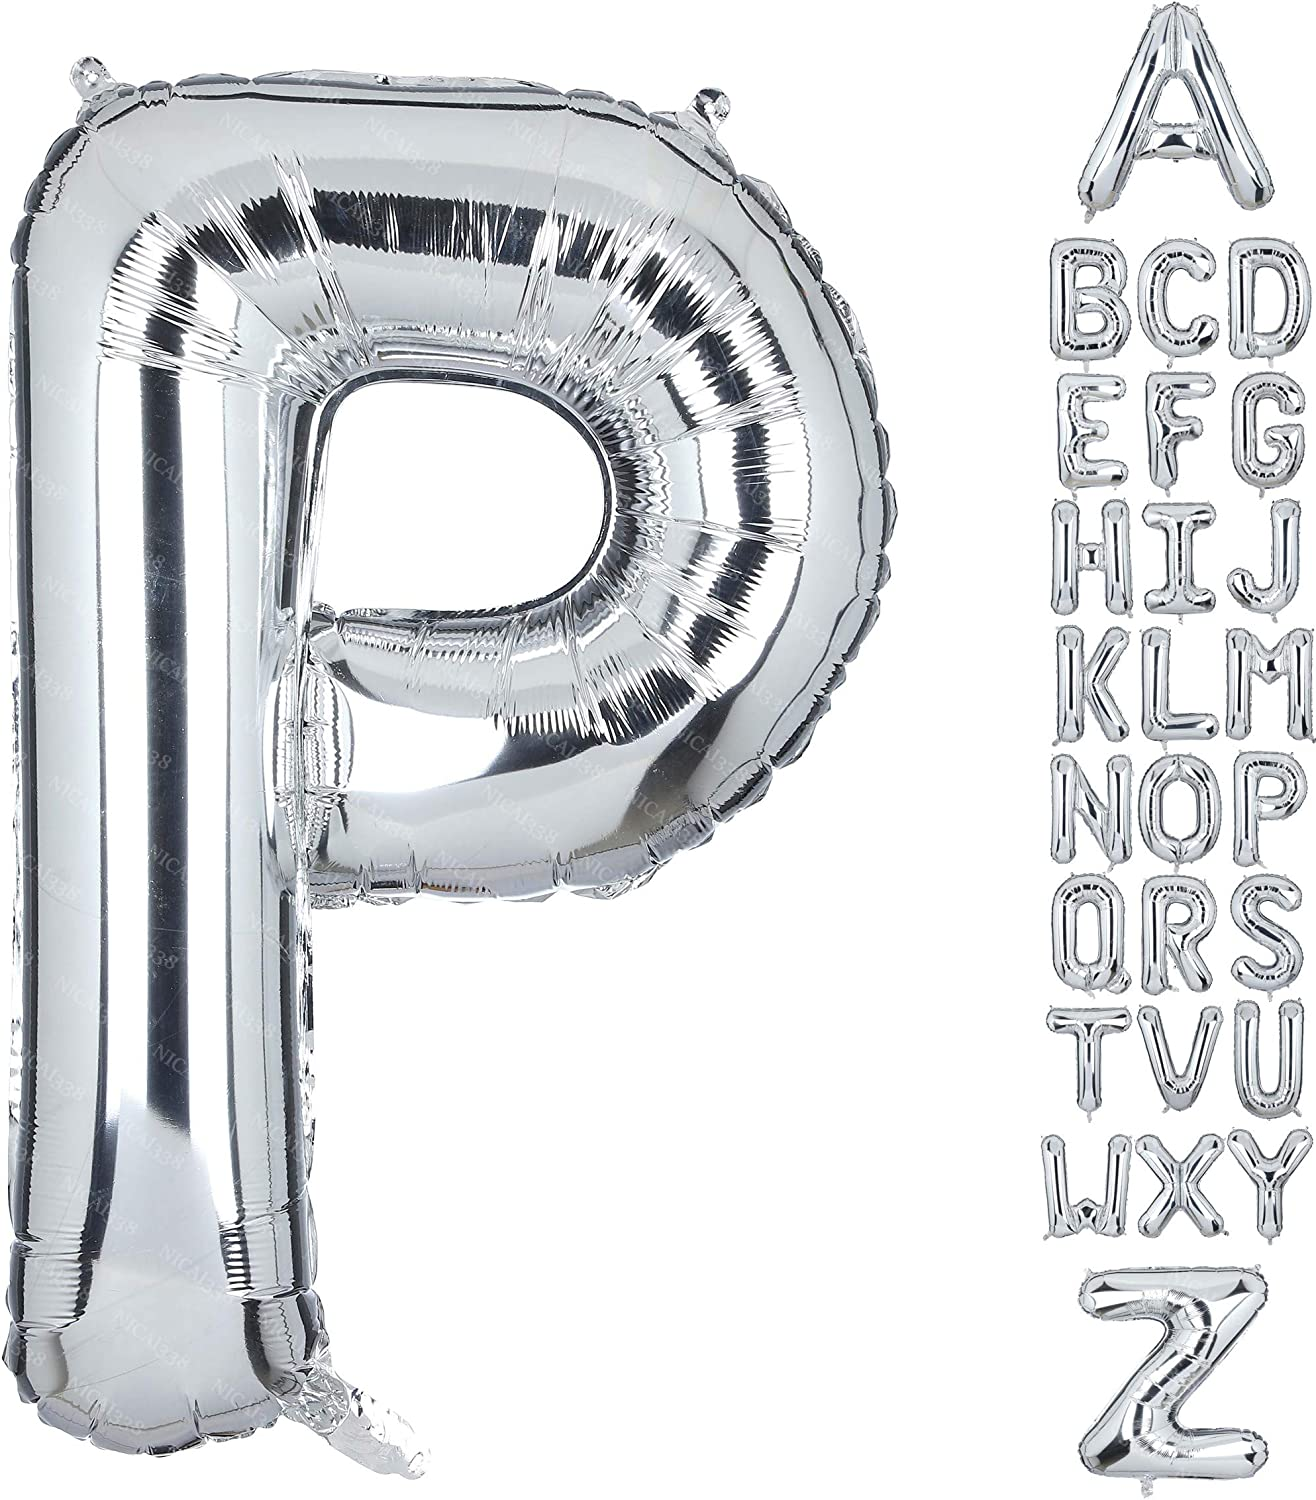 40 Inch Large Letter P Foil Balloons Silver Big Alphabet Mylar Helium Balloon for Birthday Party Decoration Supplies Wedding Decor Girls Custom Word HH(Sliver-P)